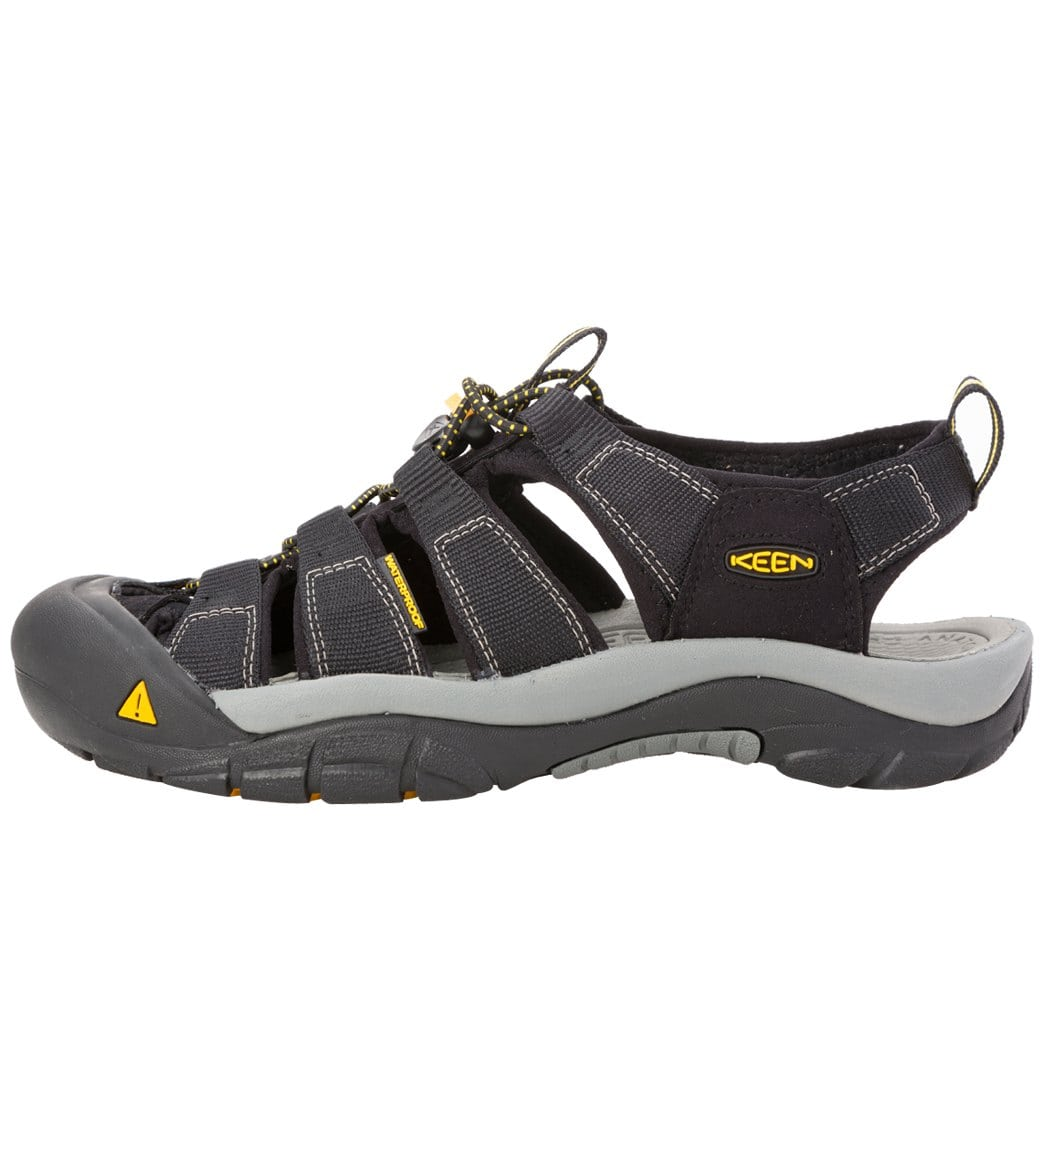 3b426949b290 Keen Men s Newport H2 Water Shoes at SwimOutlet.com - Free Shipping